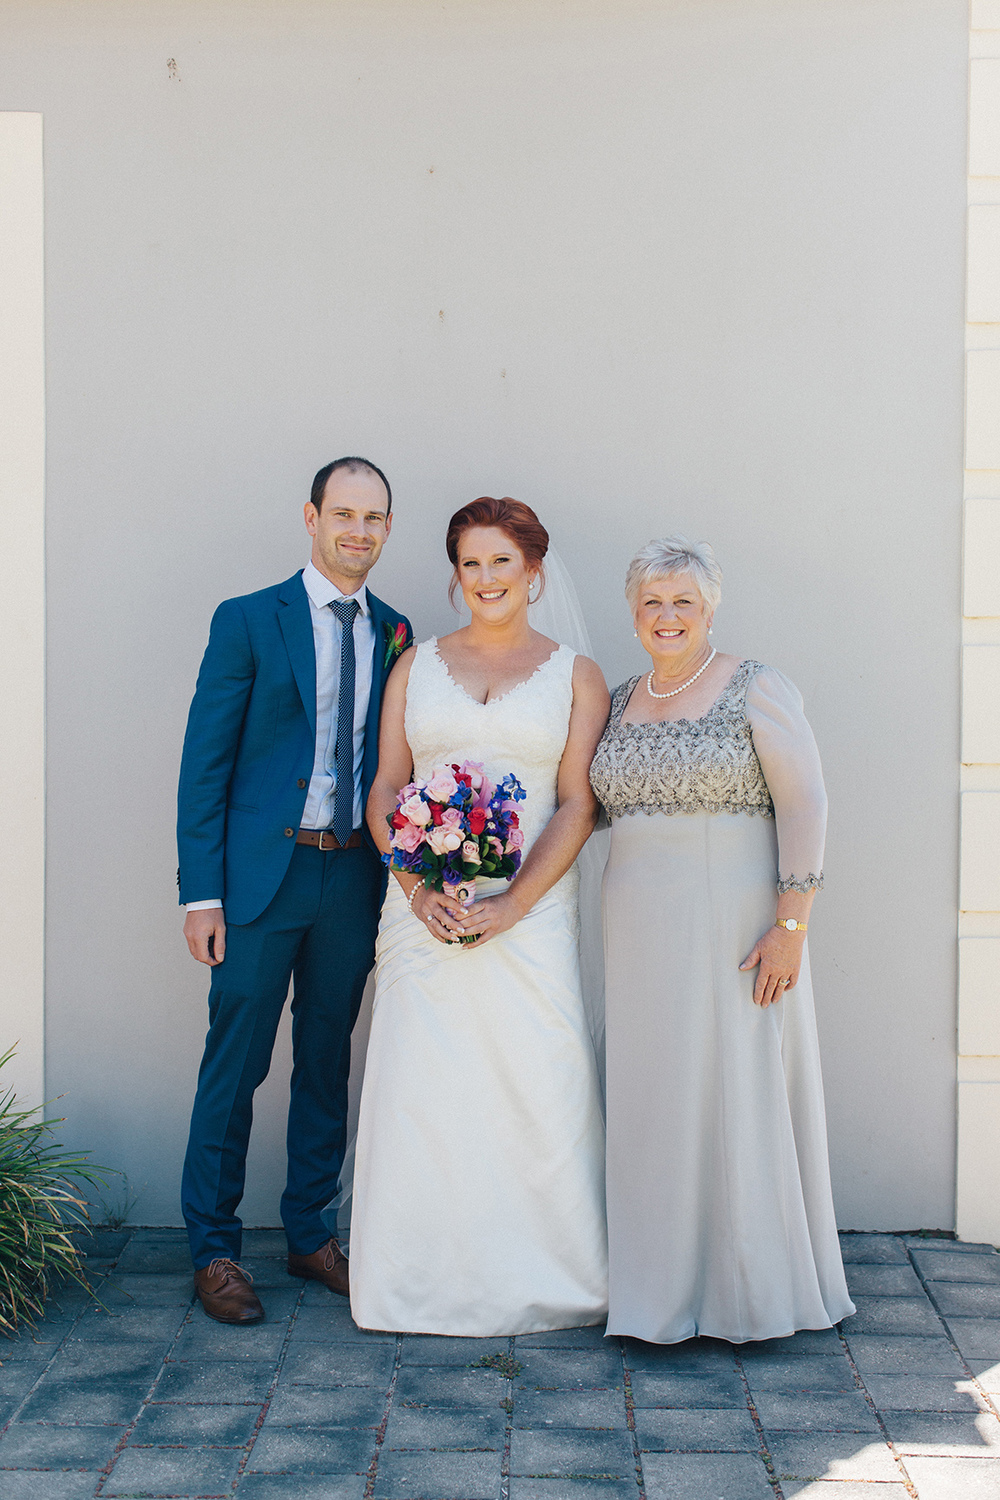 Outdoor Wedding Partridge House Glenelg 31.jpg